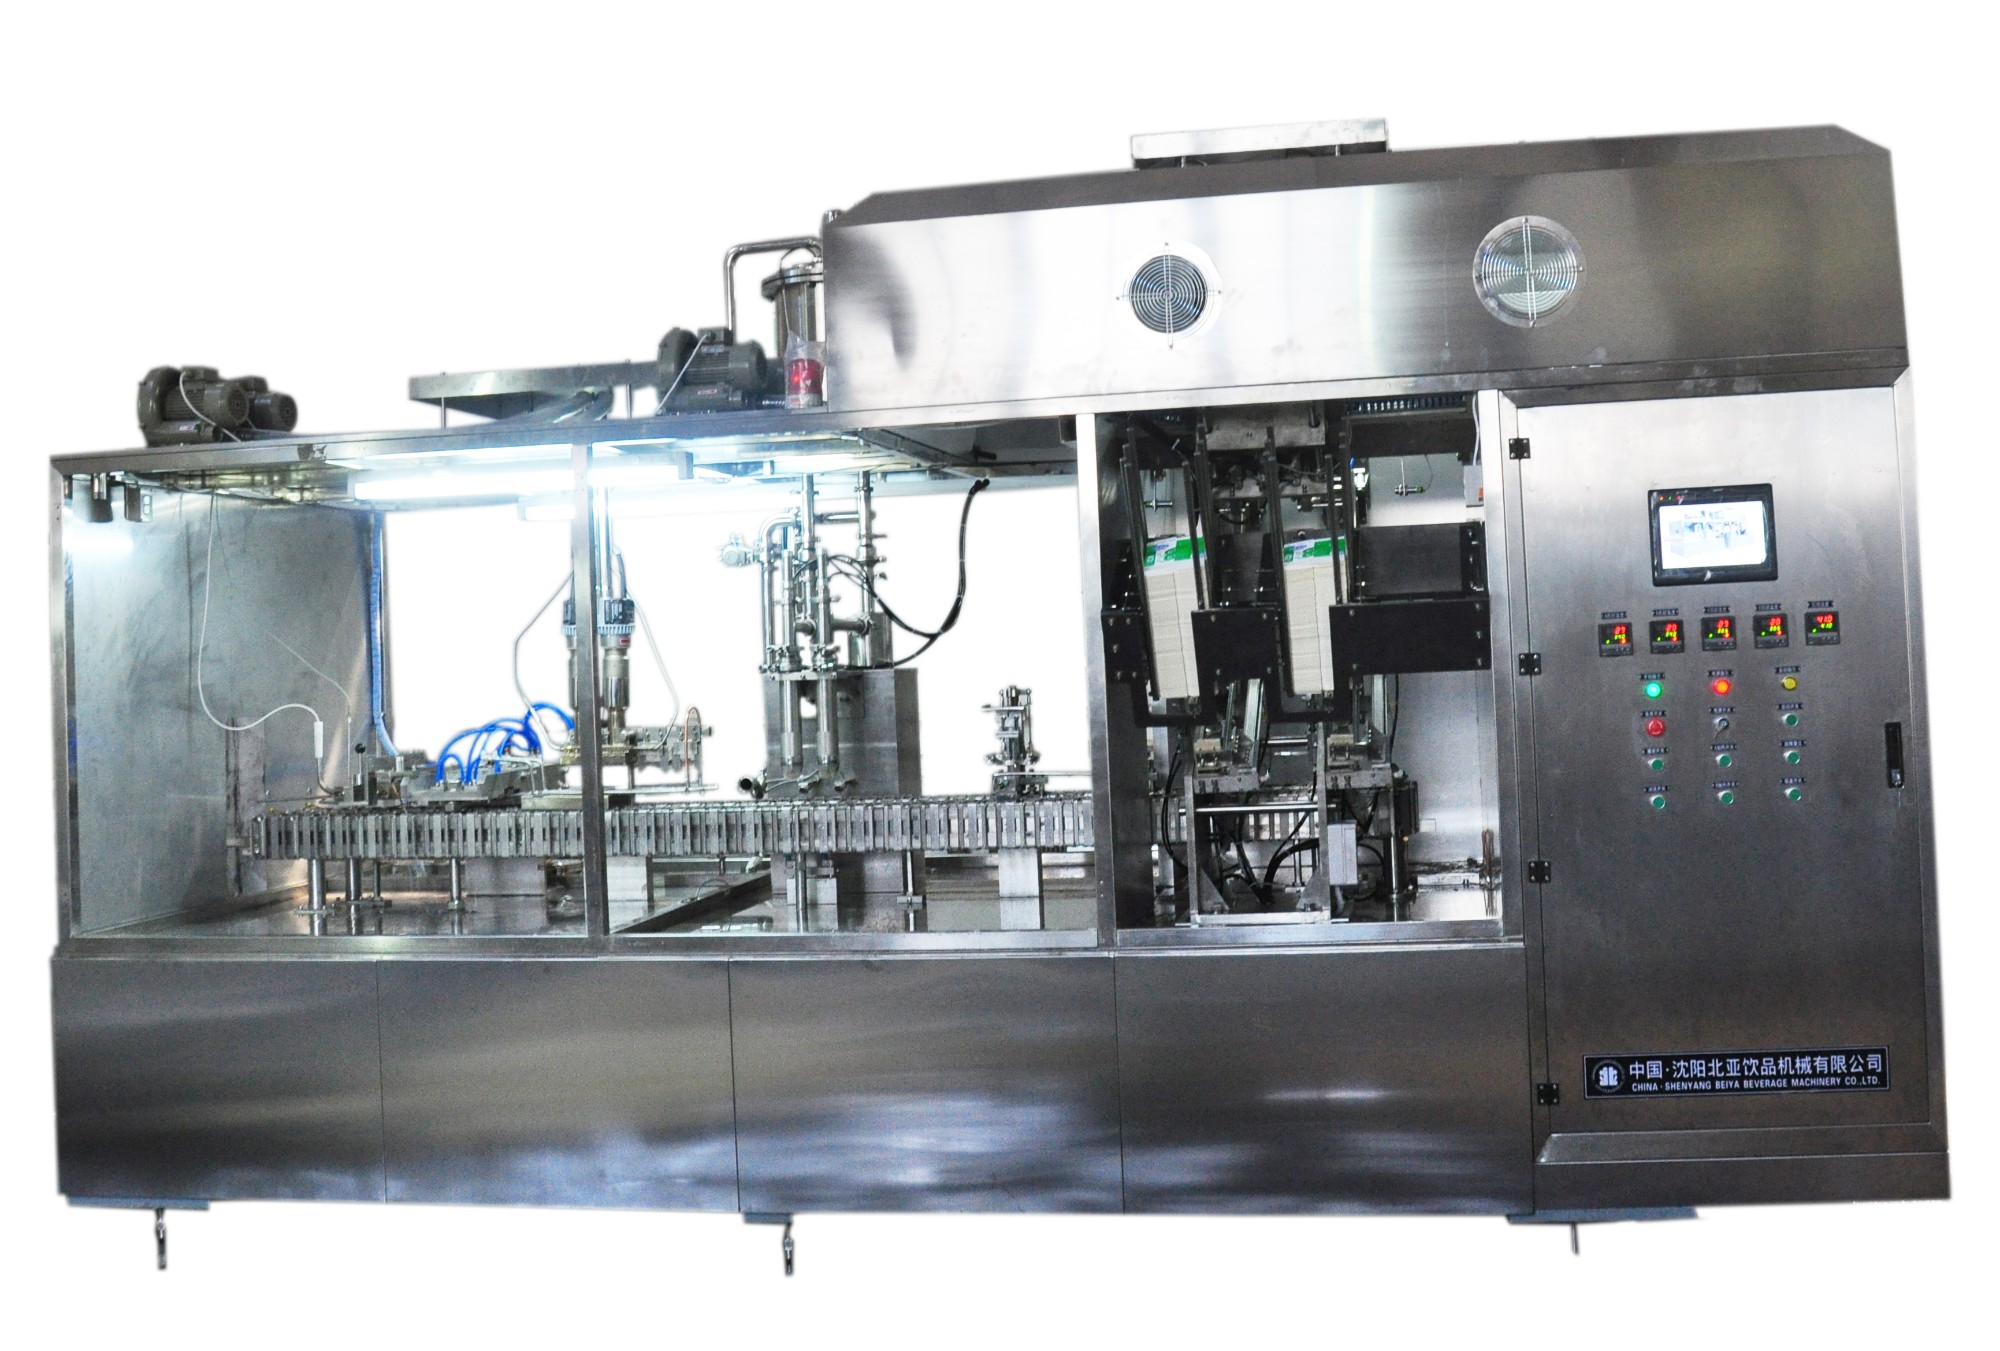 Soy Milk Gable Top Carton Filling Machine Manufacturers, Soy Milk Gable Top Carton Filling Machine Factory, Supply Soy Milk Gable Top Carton Filling Machine